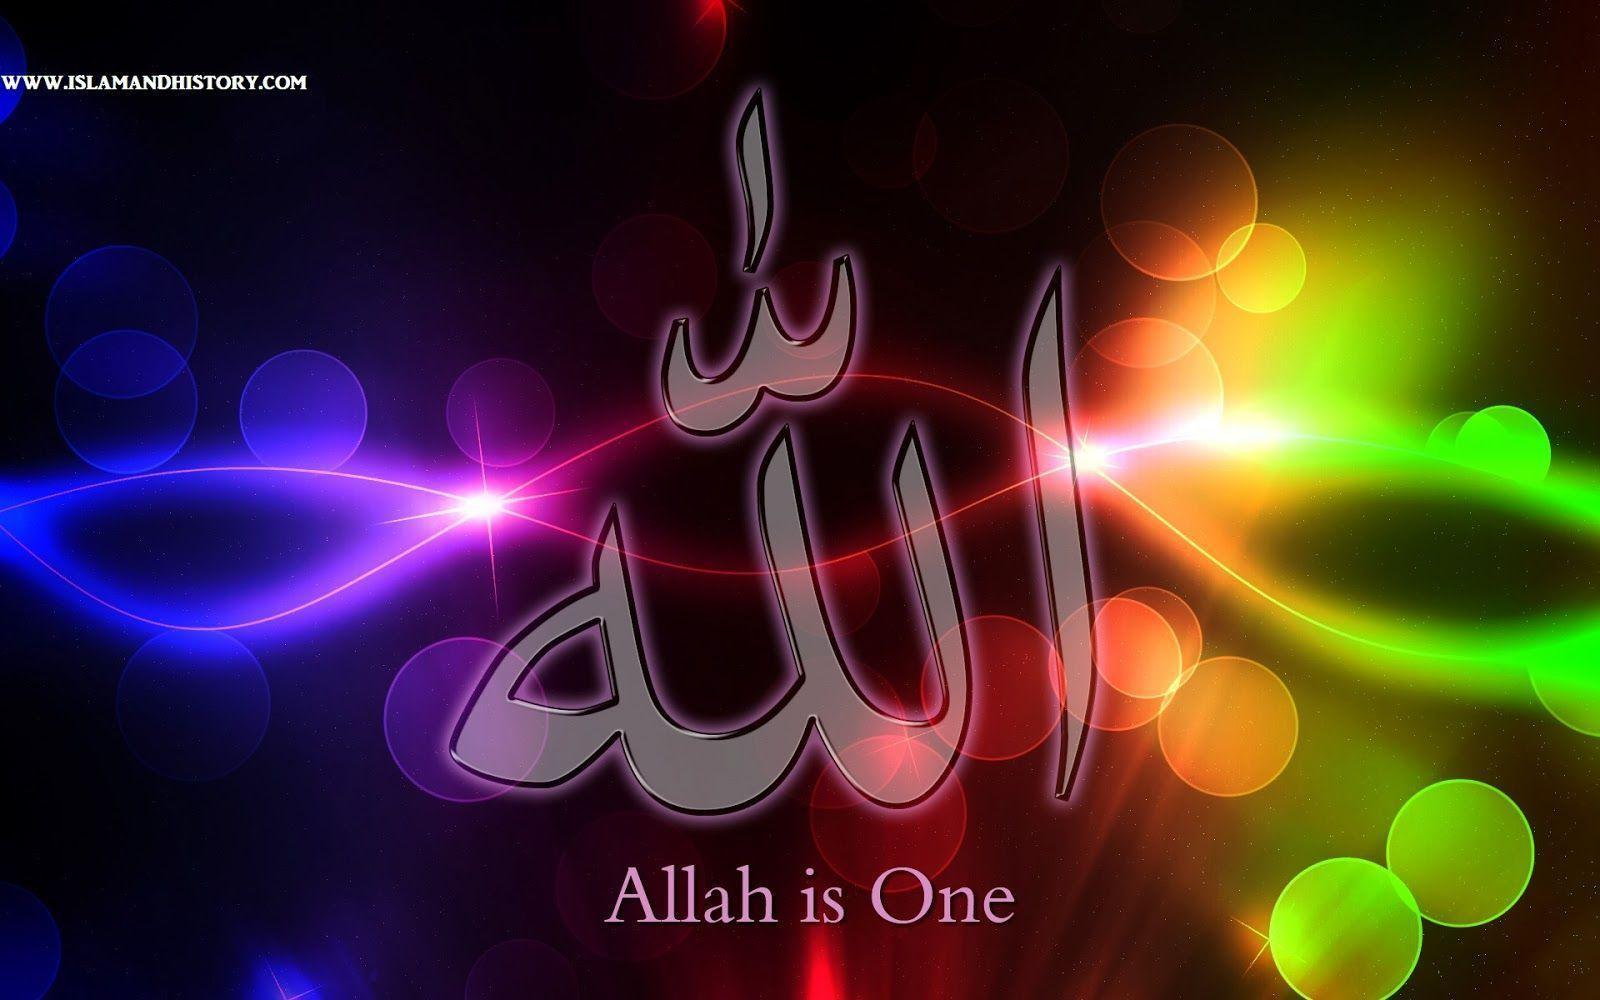 allah wallpapers hd 2015 wallpaper cave